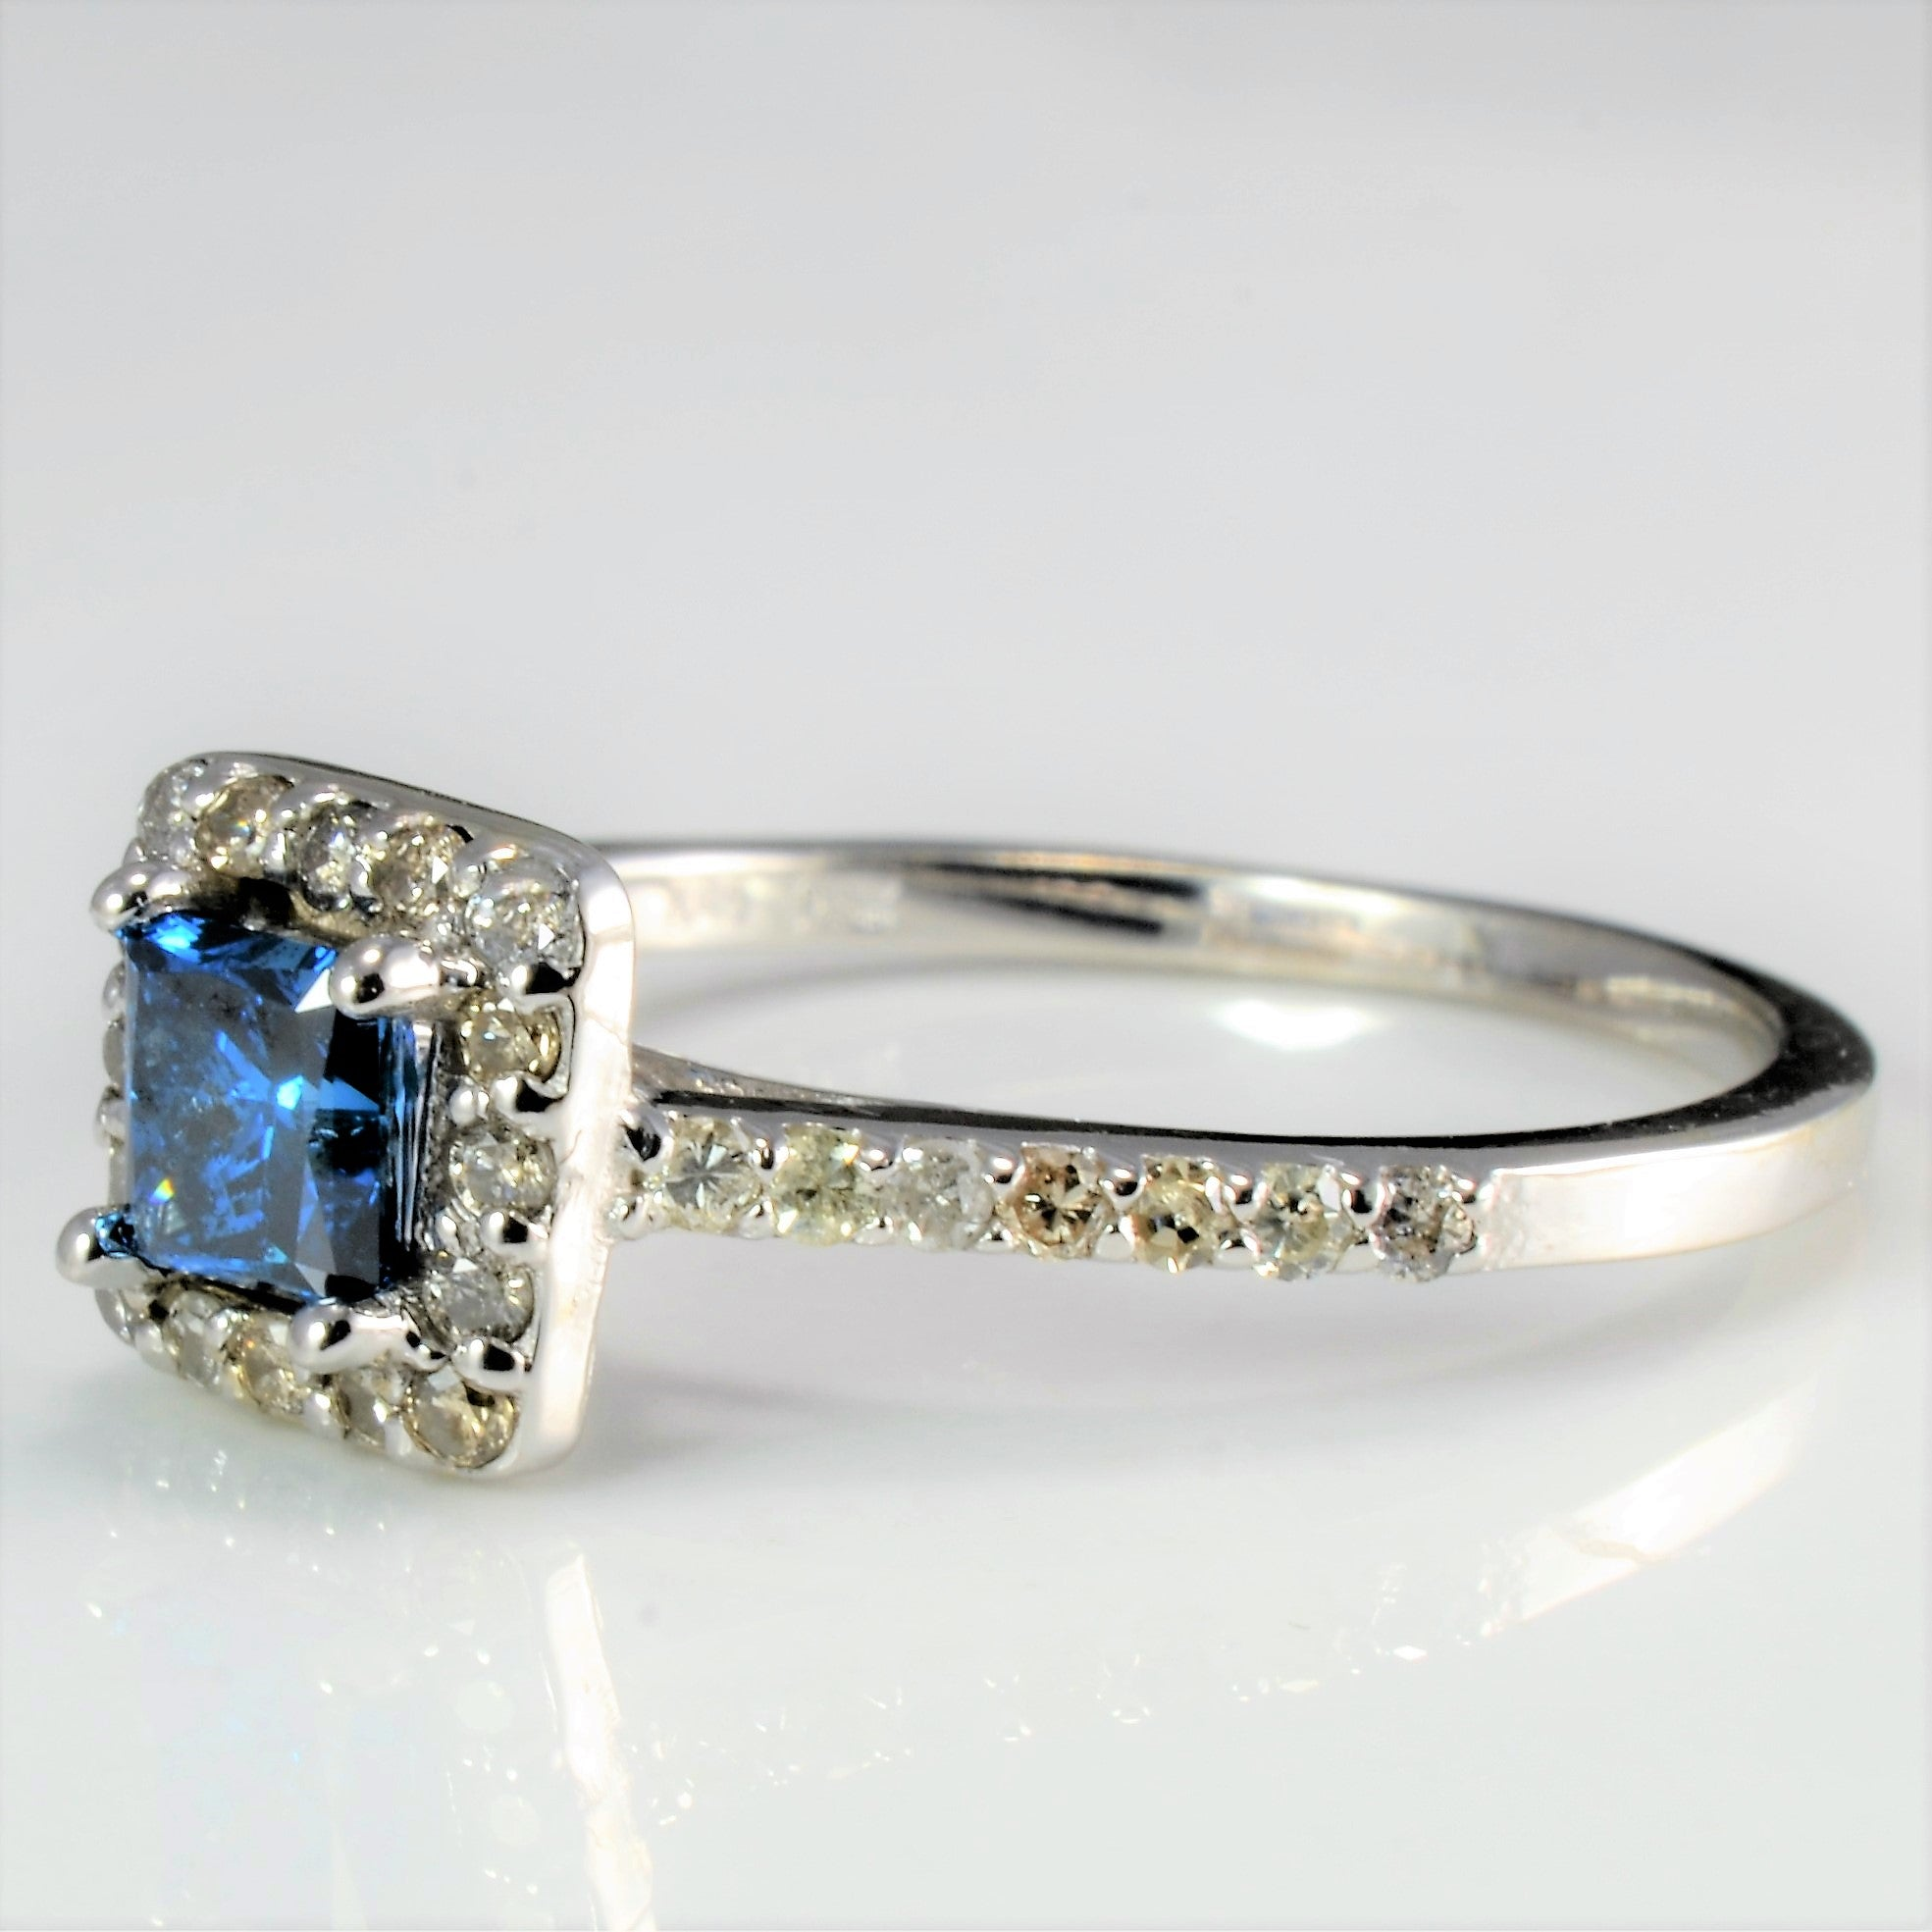 Halo Blue Diamond Ladies Engagement Ring | 0.72 ctw, SZ 6.25 |